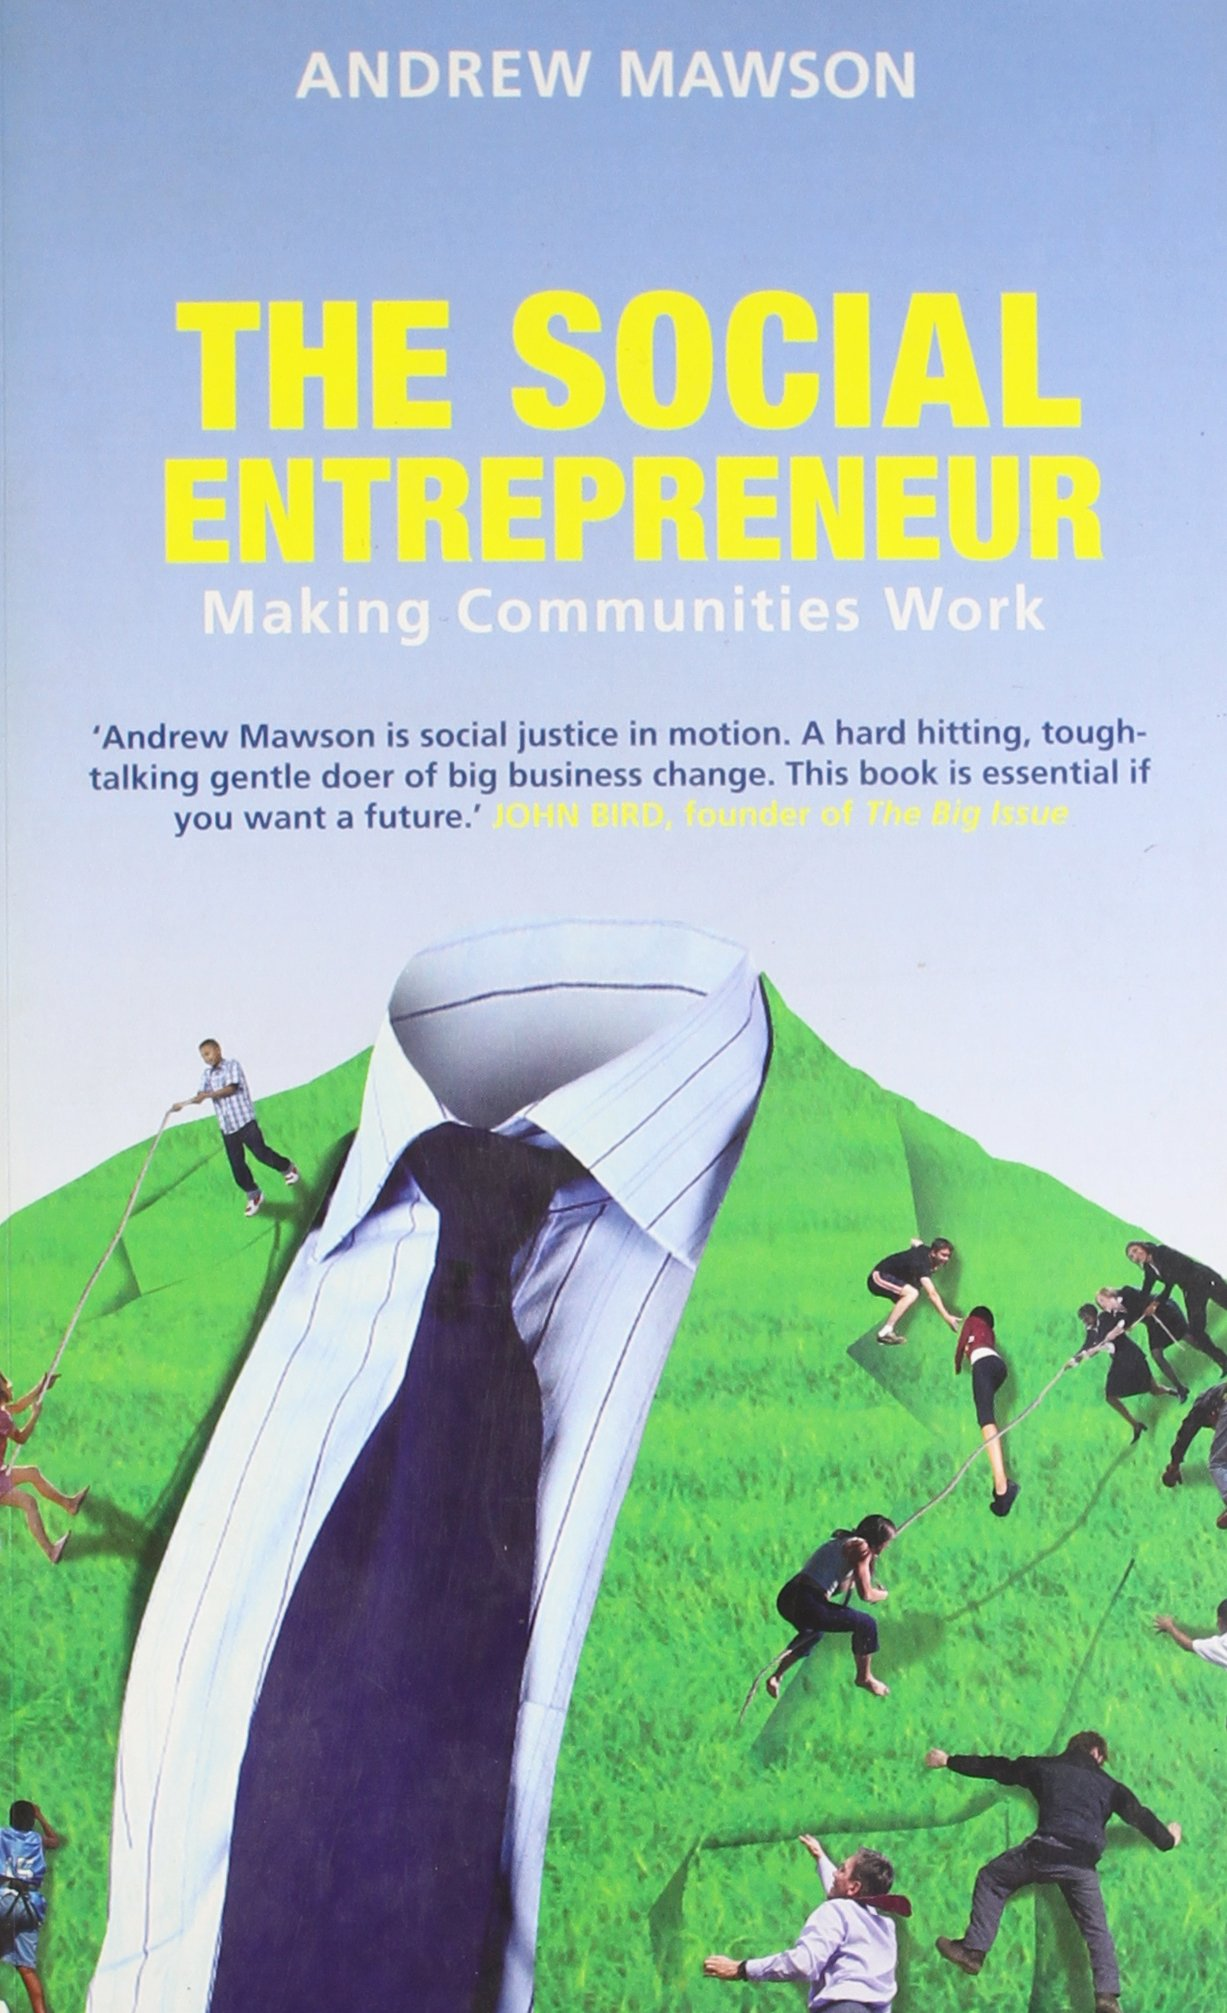 The Social Entrepreneur - Andrew Mawson    Andrew Mawson has been called social justice in motion and the Richard Branson of the social sector. This book is his own story of how he arrived in Bromley-on-Bow in East London in the 80s and tired of policy papers and fine words spoken with very little action, as one of the UK's pioneering social entrepreneurs, he dared to do things differently with great effect to bring change in one of the most deprived boroughs in the UK. Simply by believing in people and their capacity to achieve amazing things.